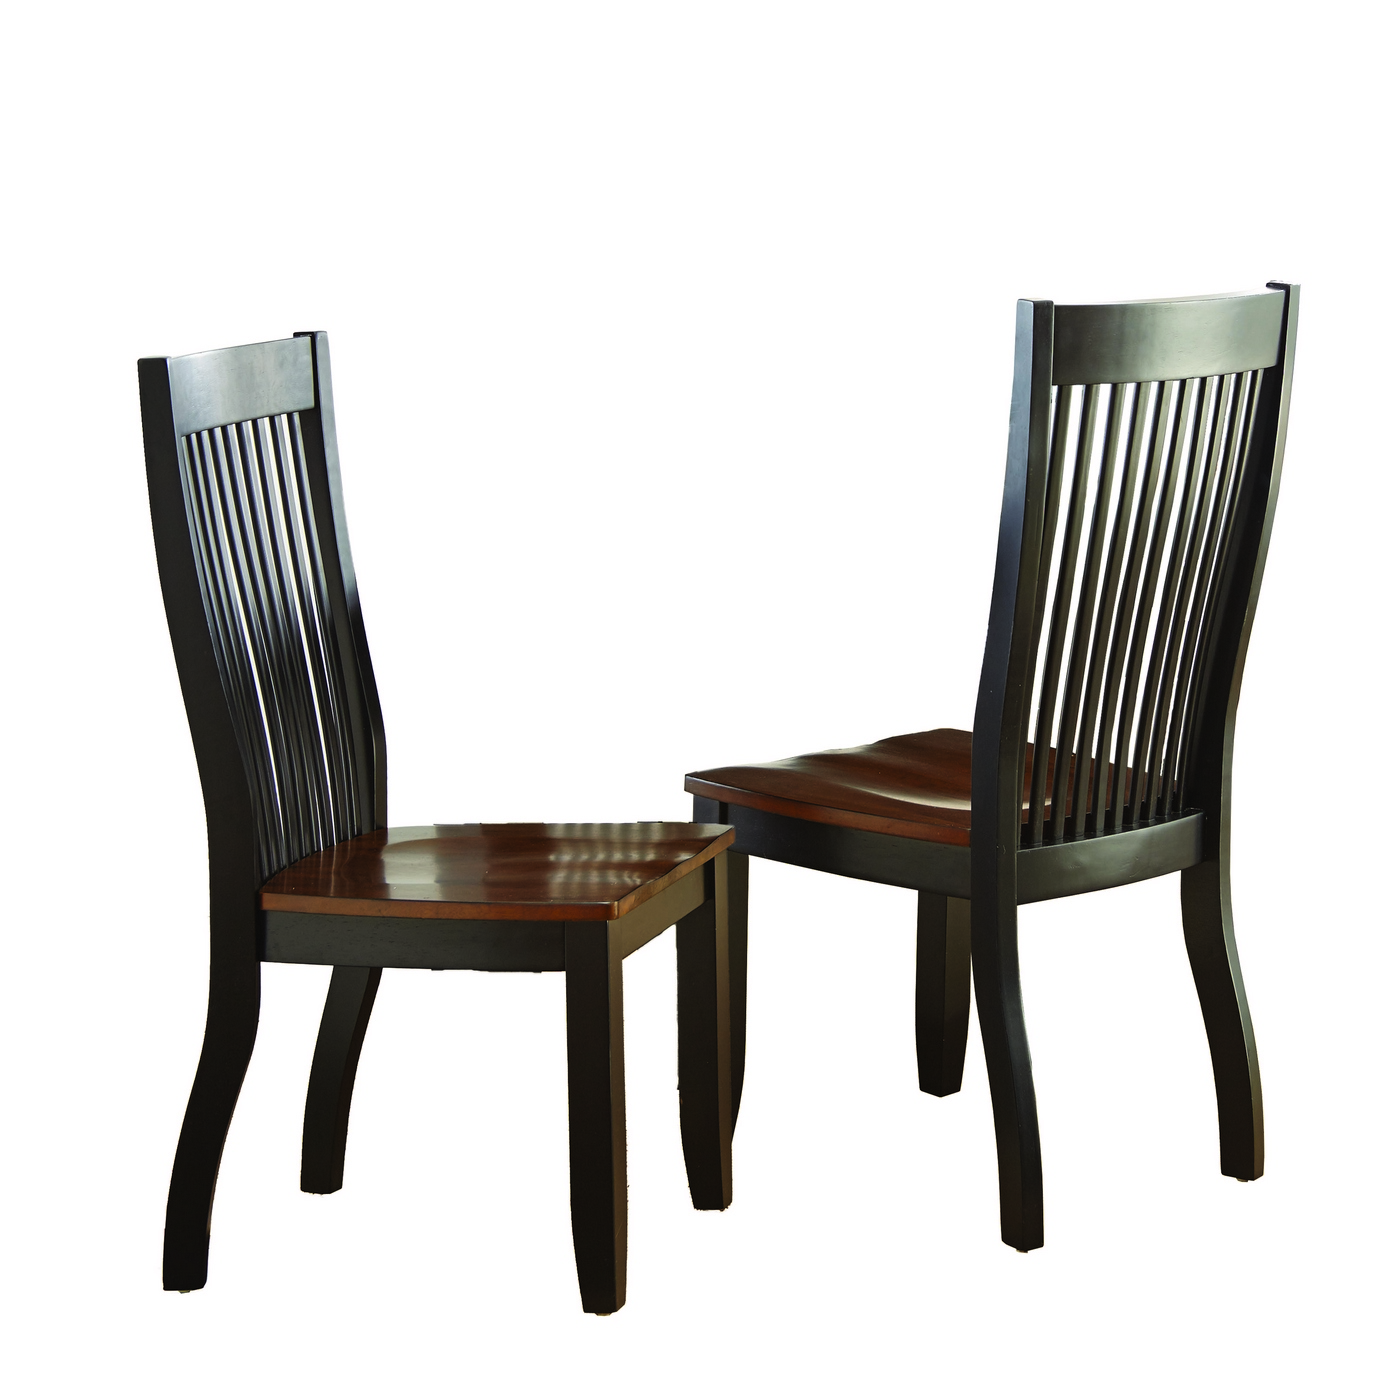 unfinished wooden chairs canada wedding chair cover hire grantham set of 2 lawton modern solid wood mision style slat back